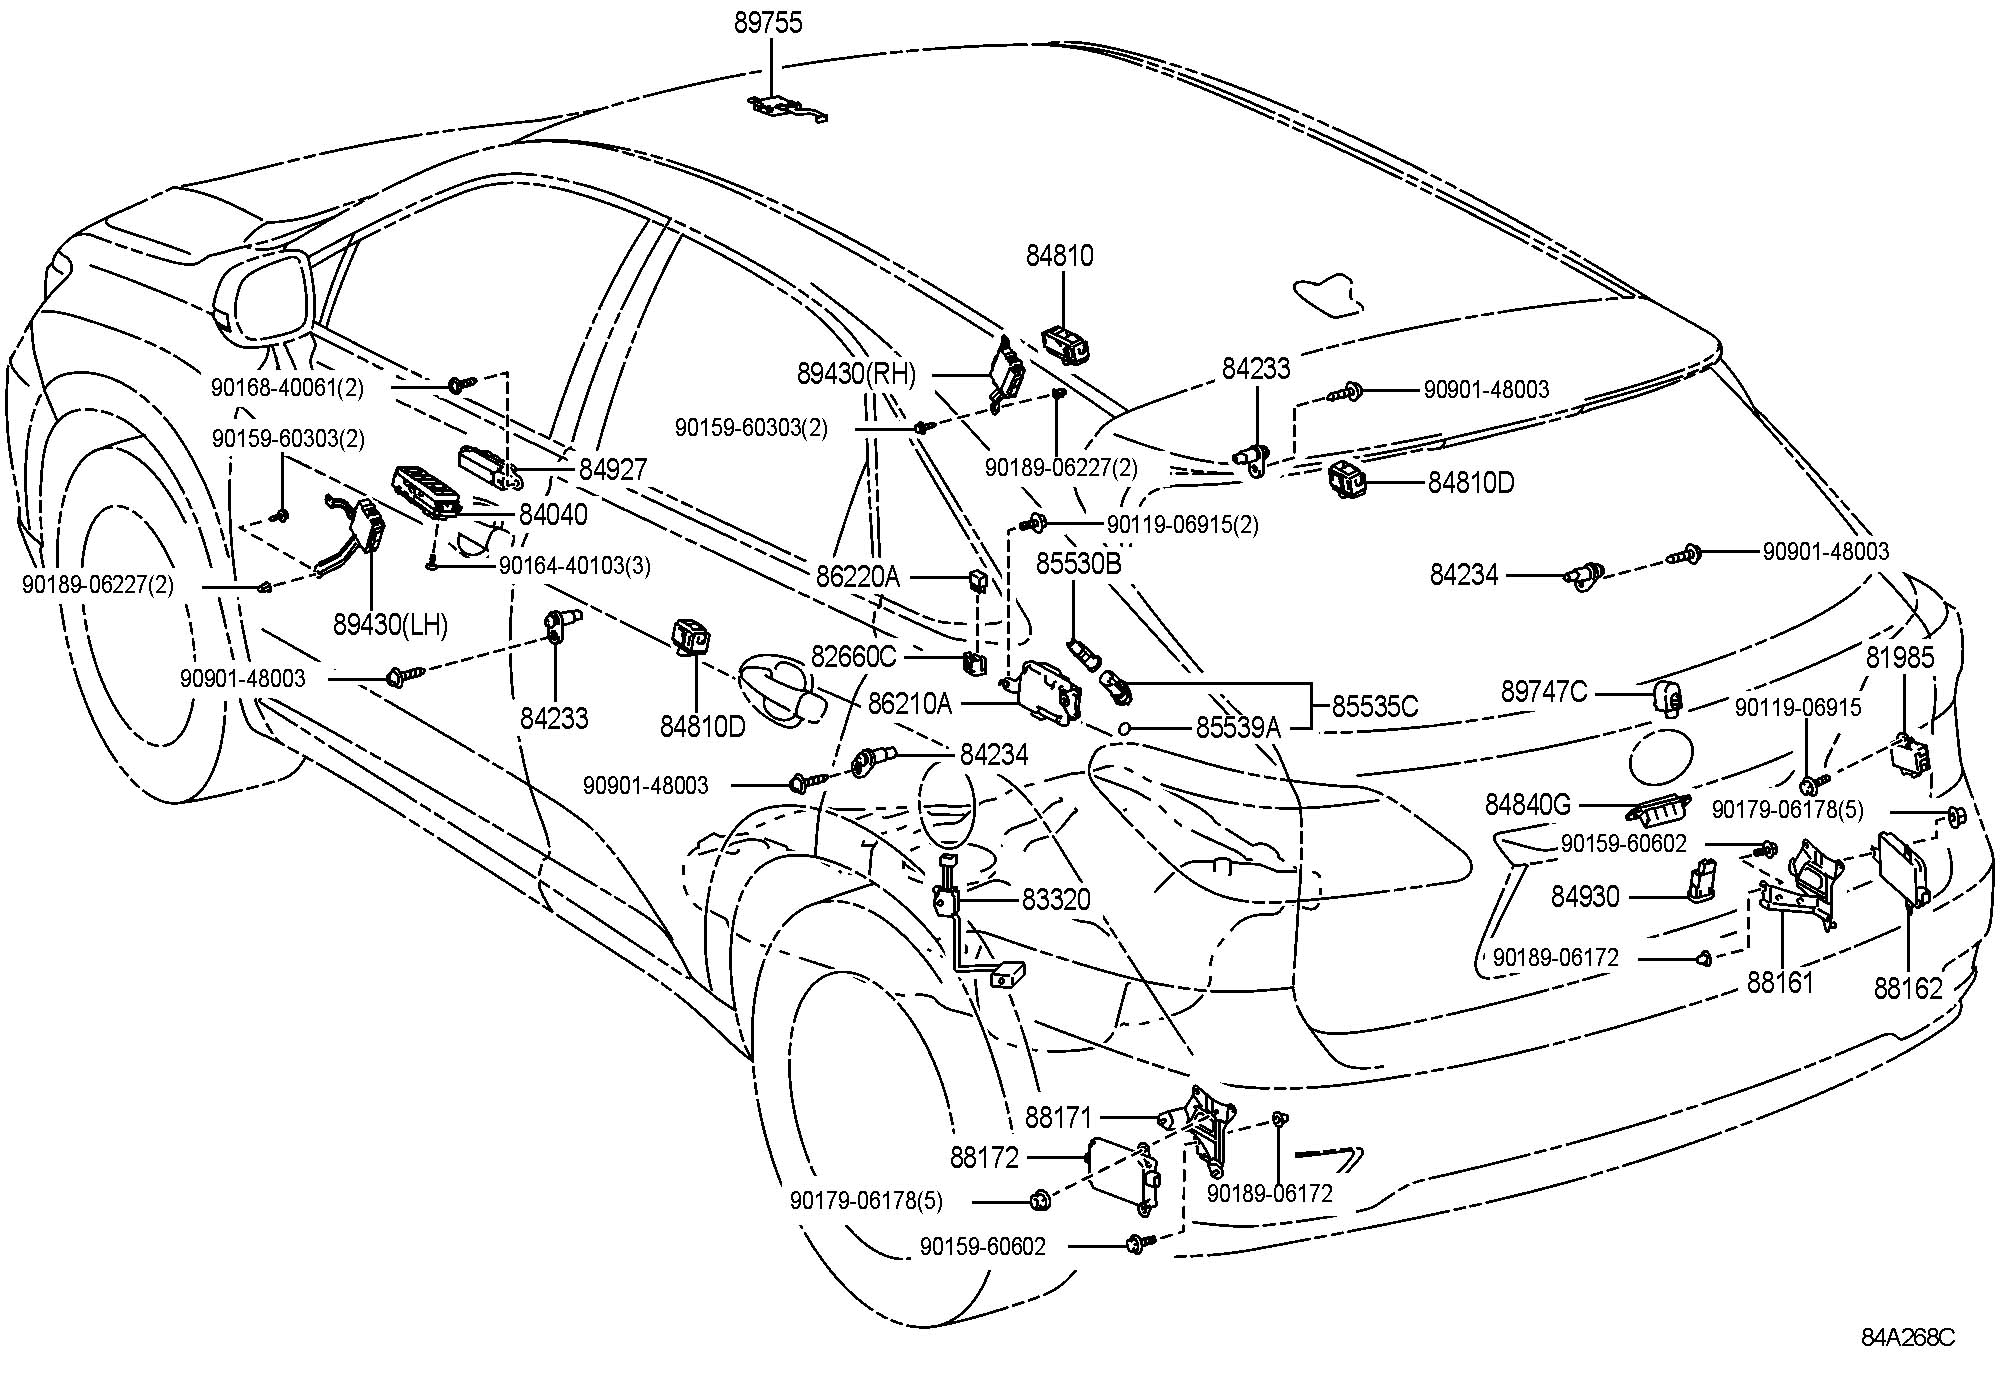 2004 Lexus Rx330 Parts Diagram, 2004, Get Free Image About